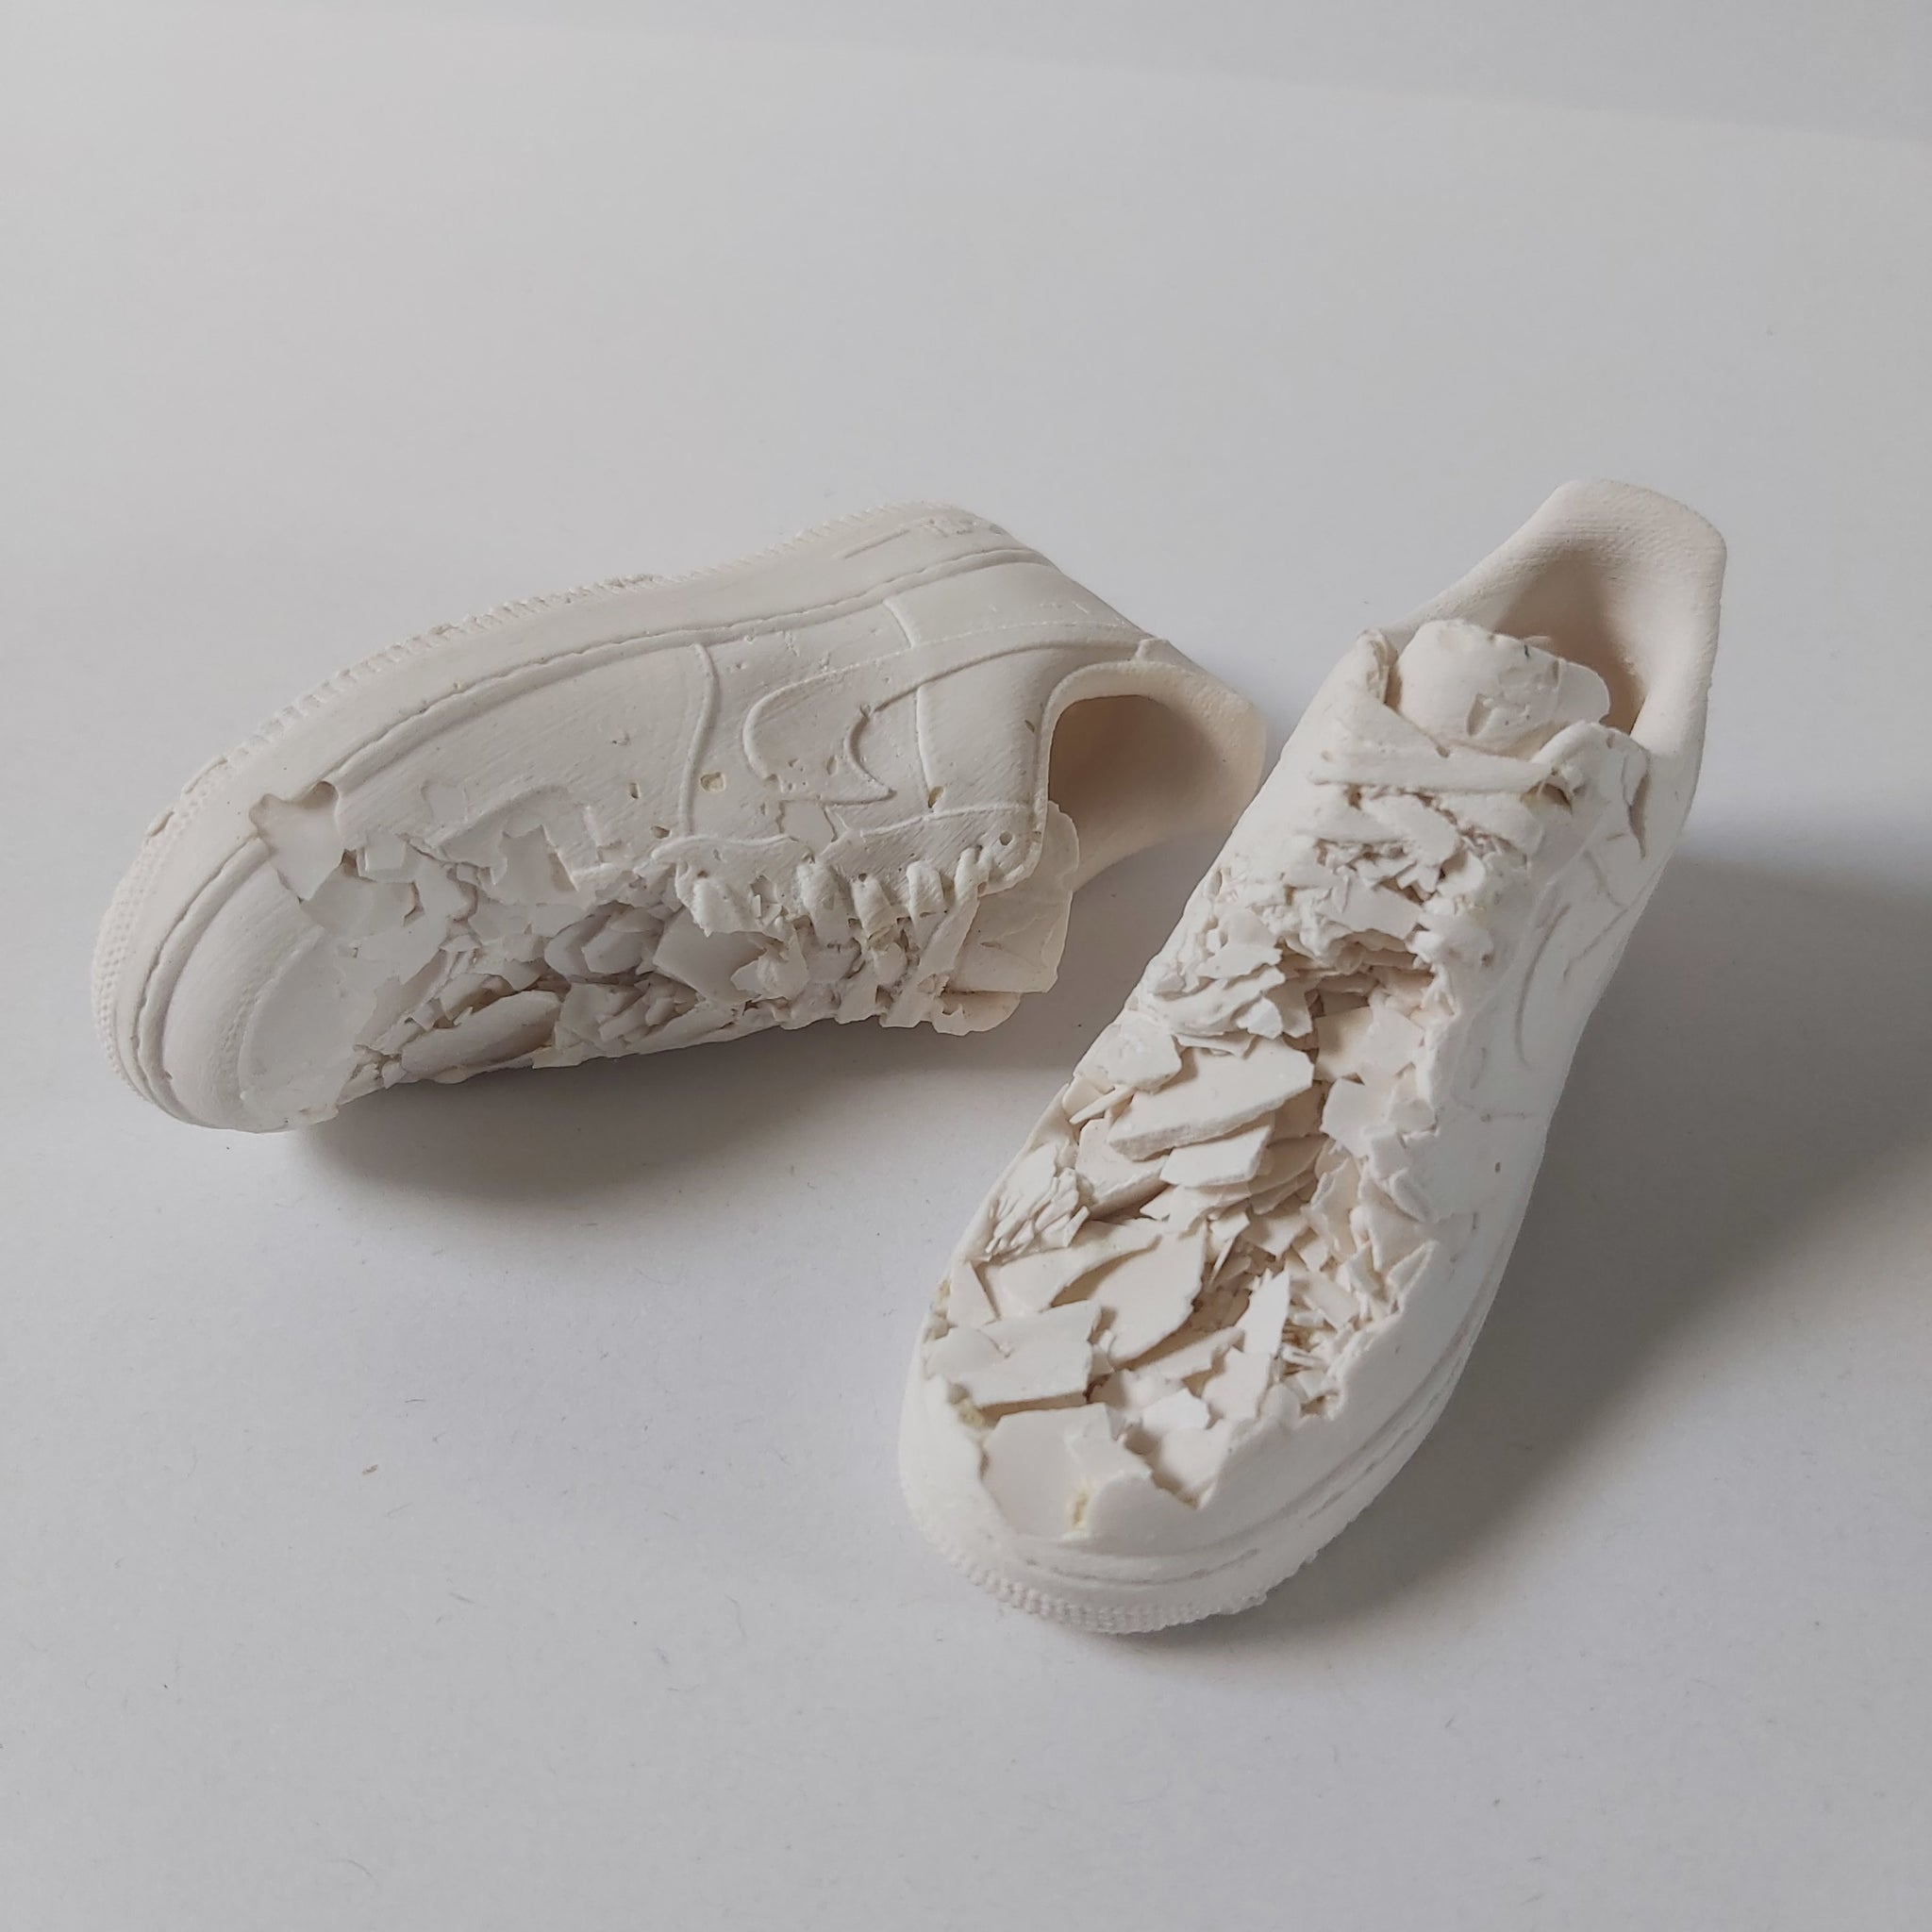 Eroded Sneaker Sculpture